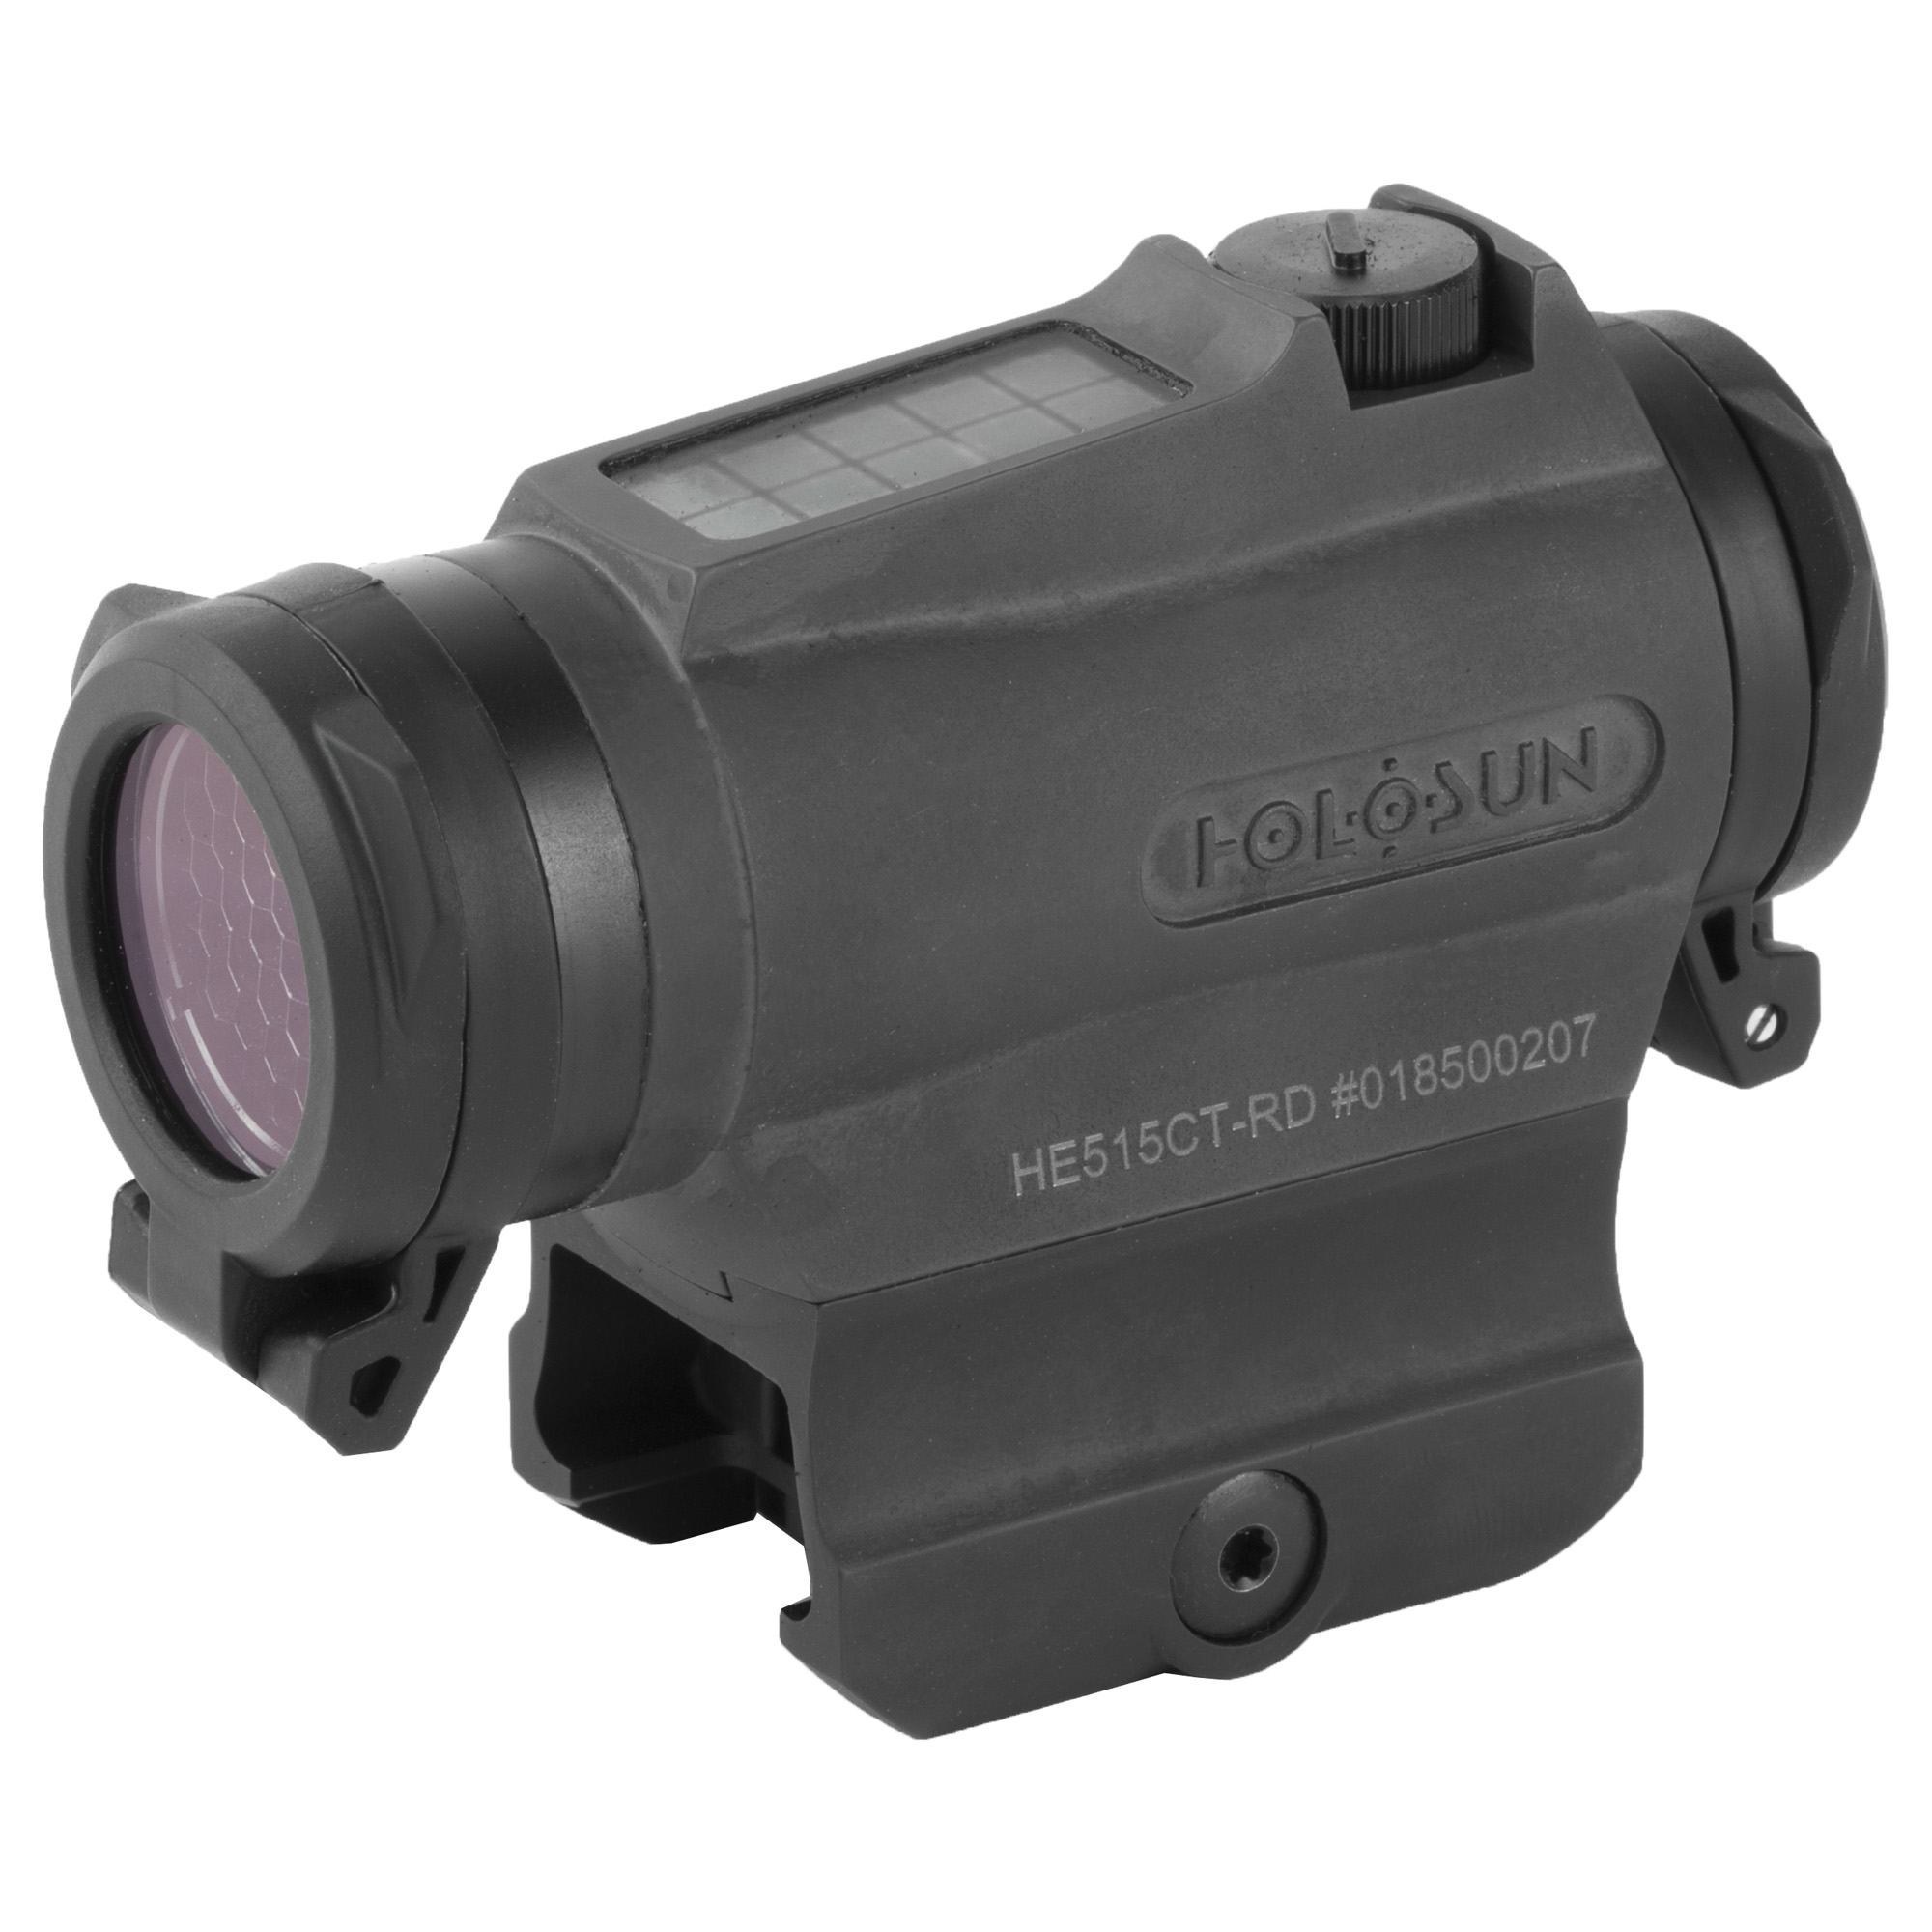 """The 515CT is a compact 20mm micro optic packed with innovations. Featuring our Multi-reticle system"""" the 515CT allows the operator to switch from a 2 MOA dot to a 65 MOA circle dot with a push of a button. Our highly efficient light emitting diodes and Solar Fail-safe technology allow the 515CT optics to run without a battery in many lighting conditions. Additionally"""" the CR2032 battery lasts up to 5-years. The 515CT is housed in CNC machined Titanium and comes with removable"""" non-obstructing"""" clear flip-up lens covers and kill flash. Holosun's Shake Awake technology puts the optic to sleep with no motion and wakes it up"""" recalling the last setting with the slightest movement"""" conserving battery life even further. The HE515CT is built for all your needs no matter the weapon platform"""" environment"""" or type of use."""